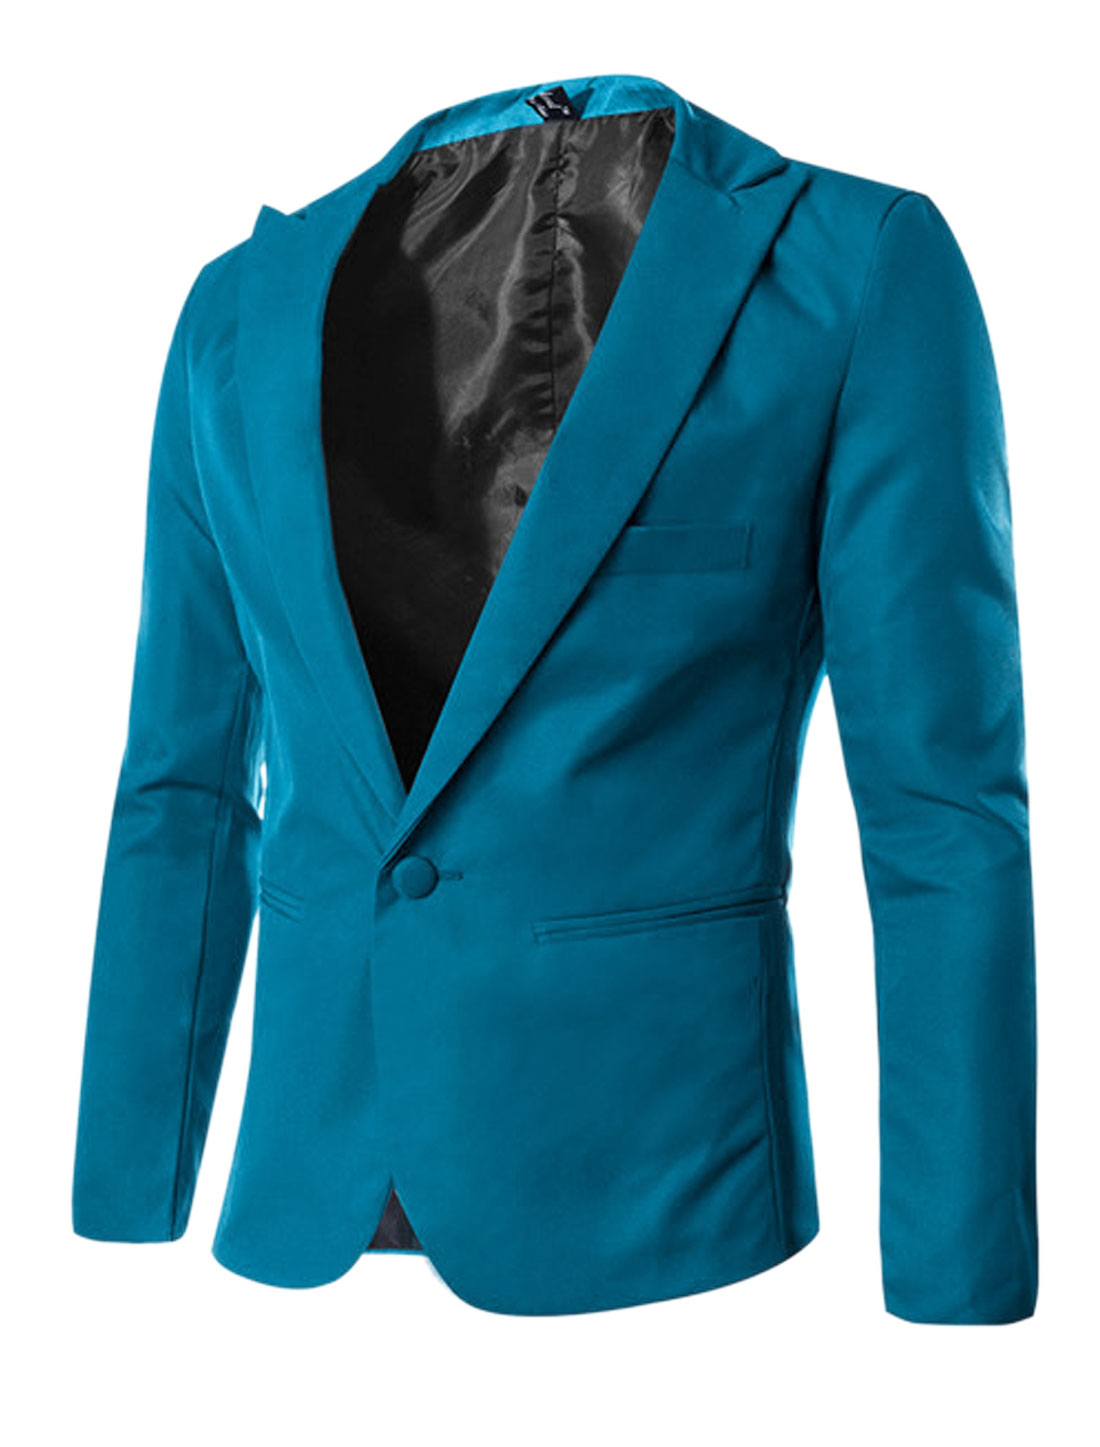 Man One Button Closed Long Sleeves Royal Blue Blazer Jacket M